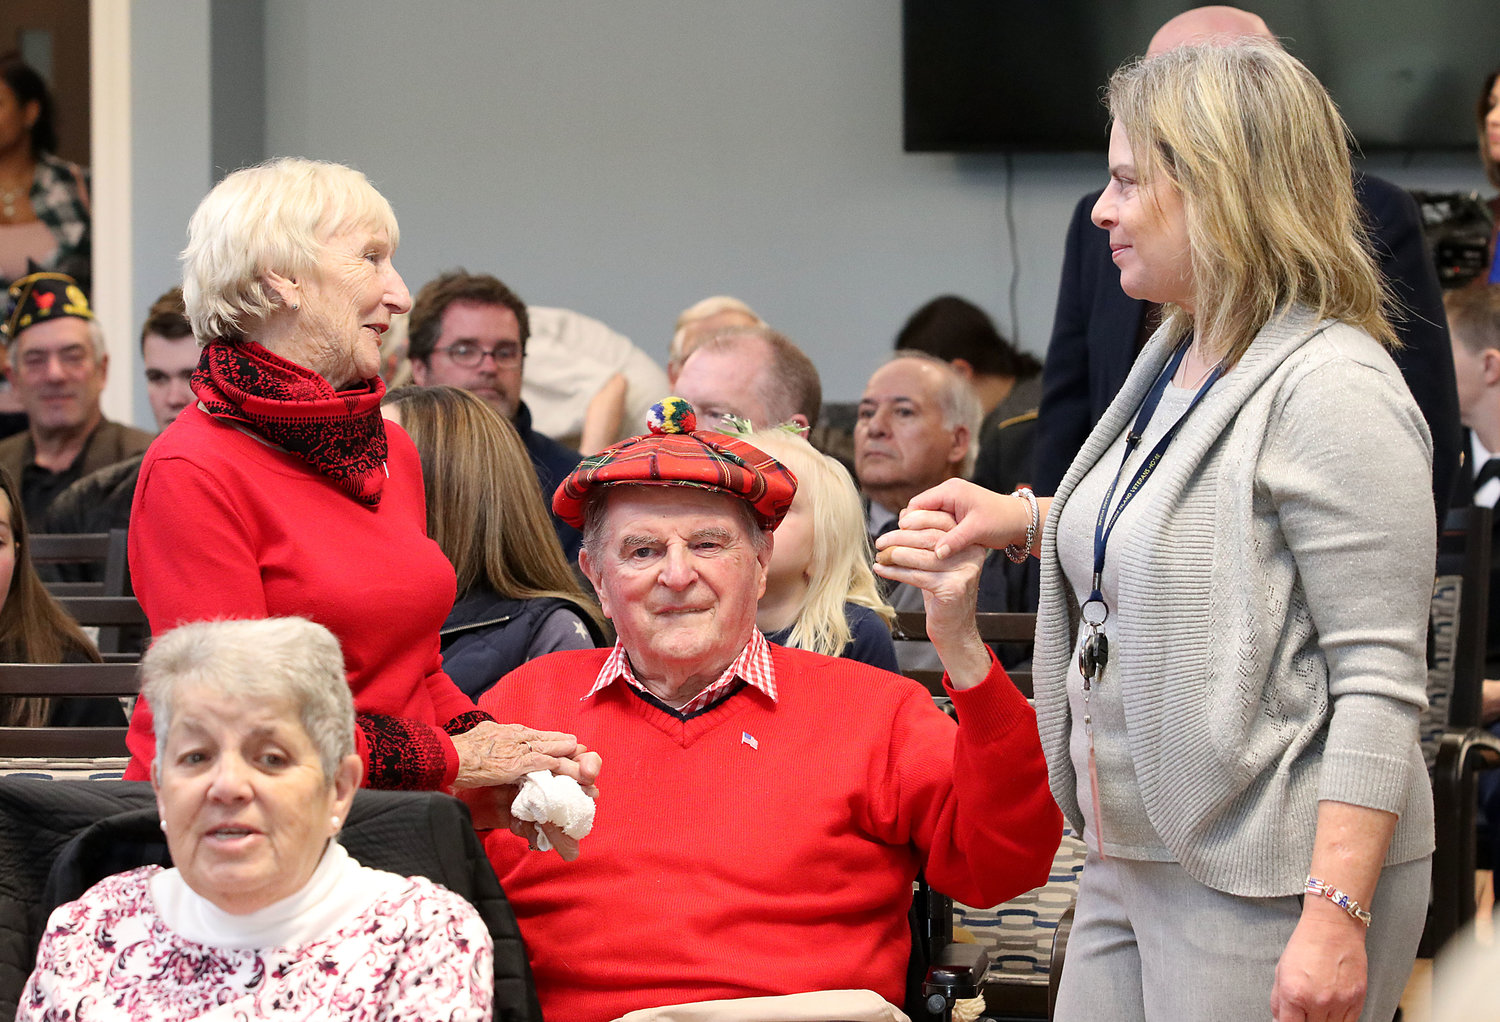 Anne Egan (left) holds the hand and dances with husband, Korean War veteran, John Egan along with Rhode Island Veteran's Home employee, Patty Serpa as the Mt. Hope High School band plays the Armed Forces Medley during the Veteran's Day service at the Rhode Island Veteran's Home on Monday afternoon.